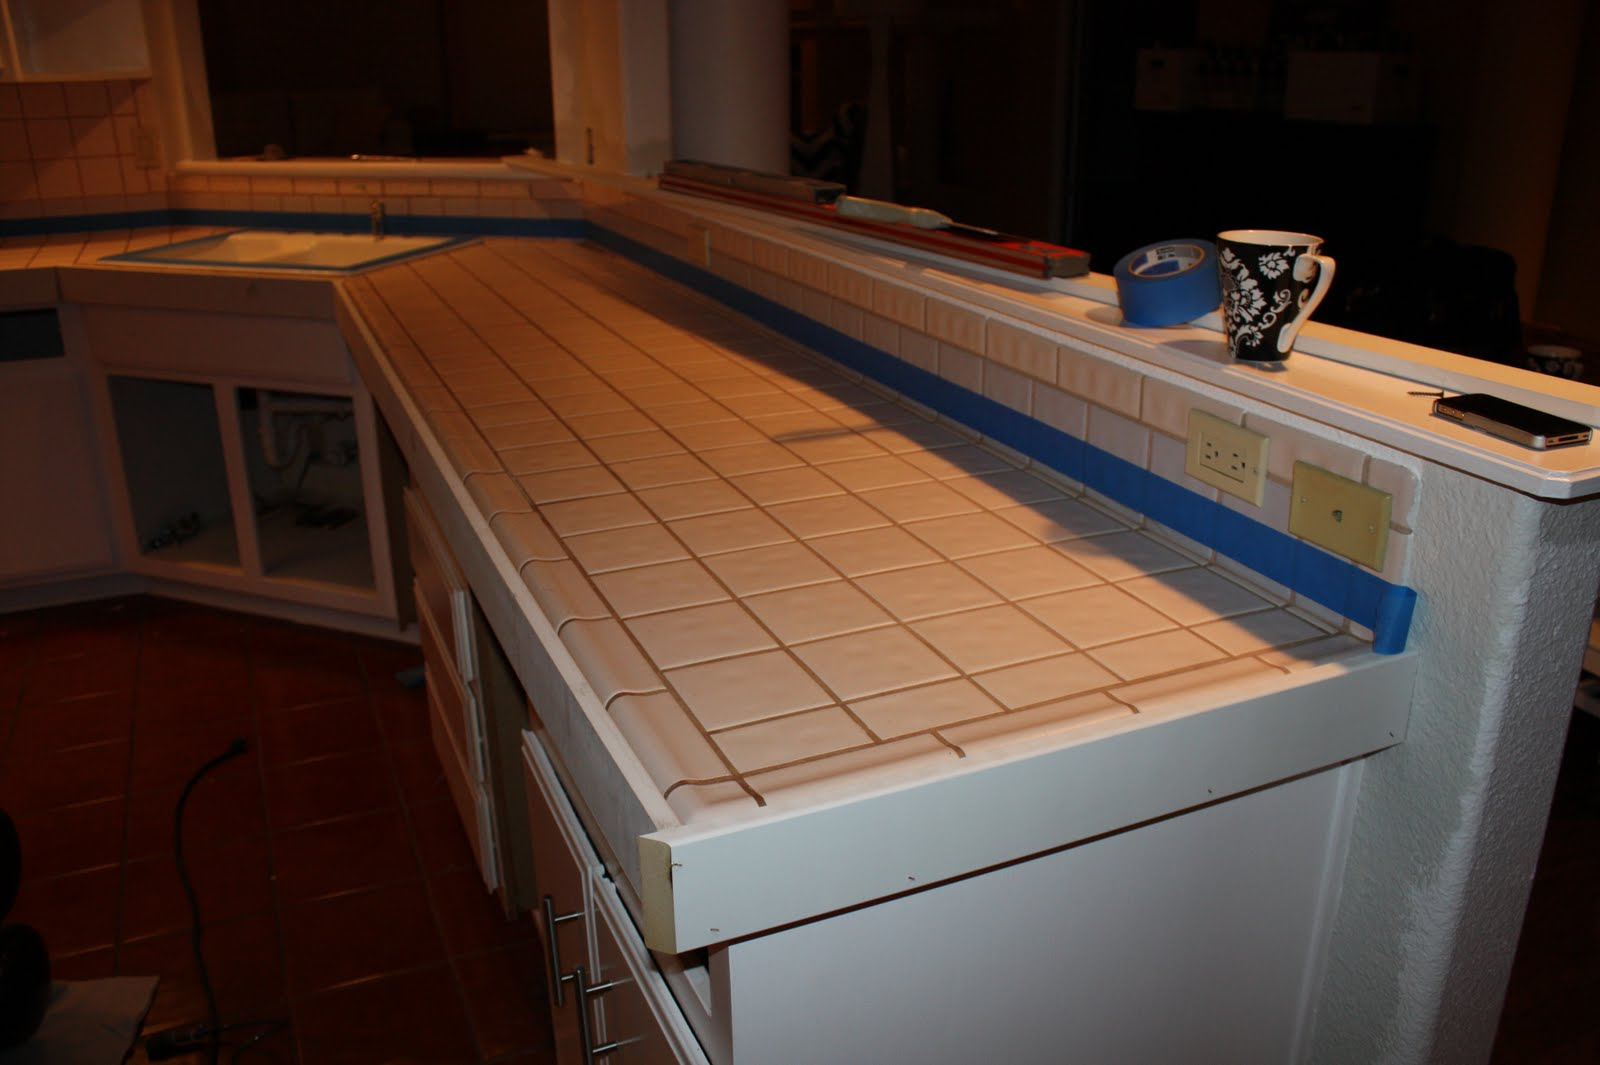 Cover Existing Kitchen Countertops